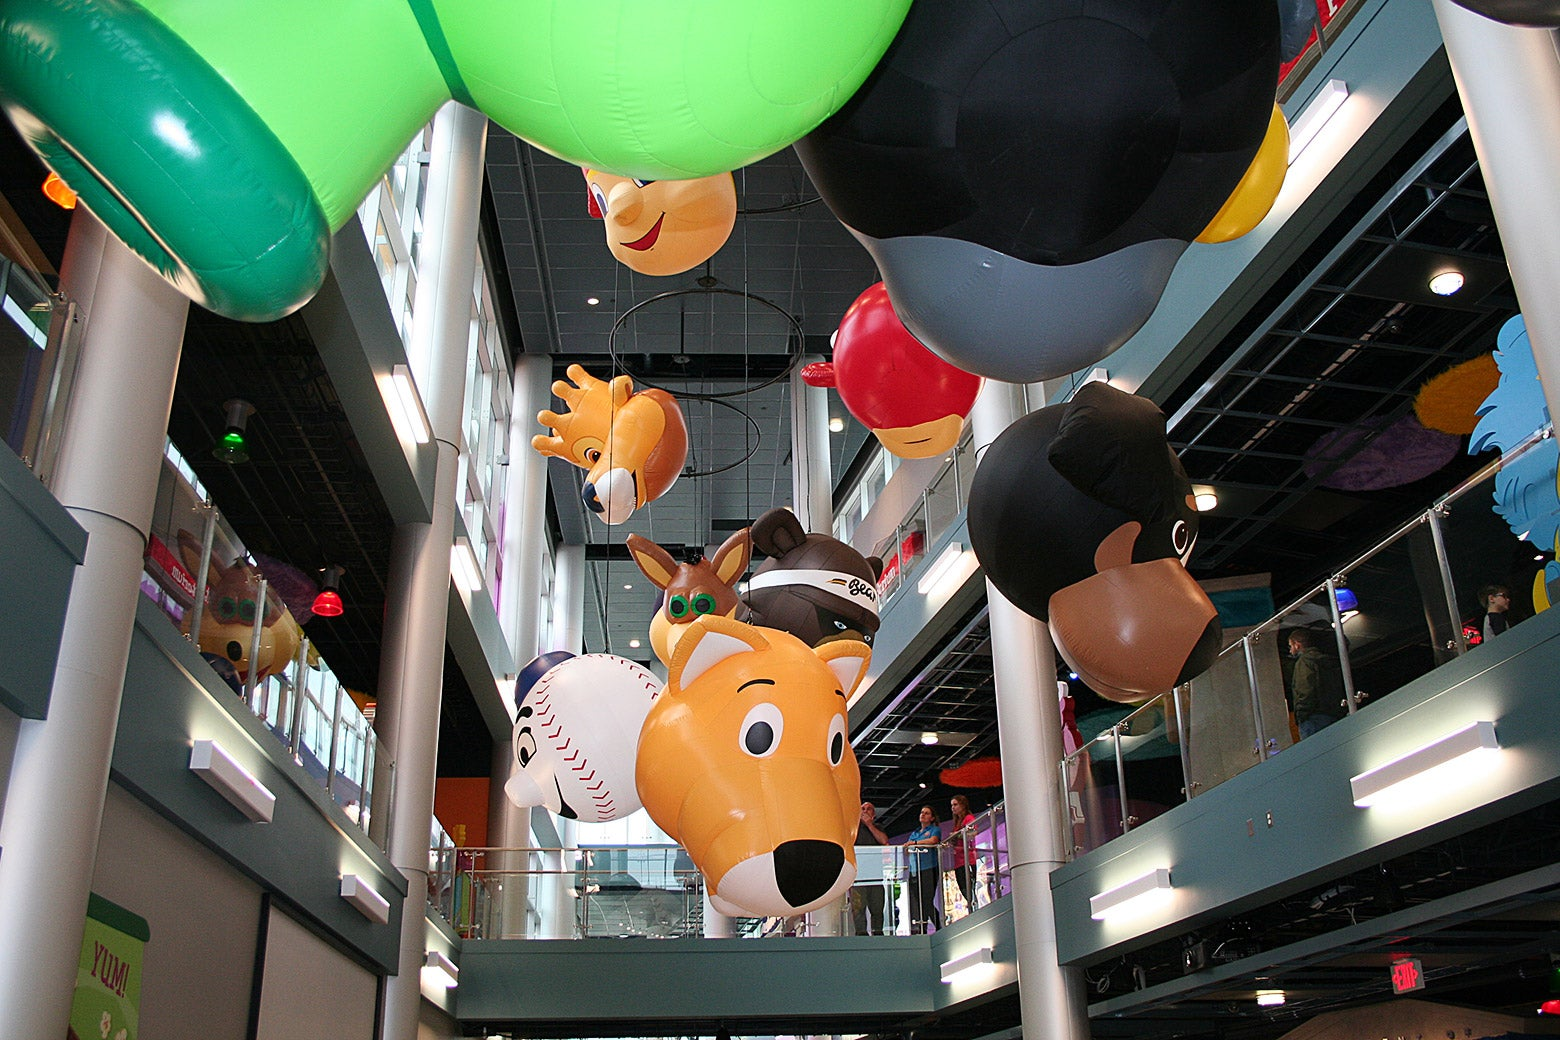 Mascot balloons hanging from the ceiling at the Mascot Hall of Fame.